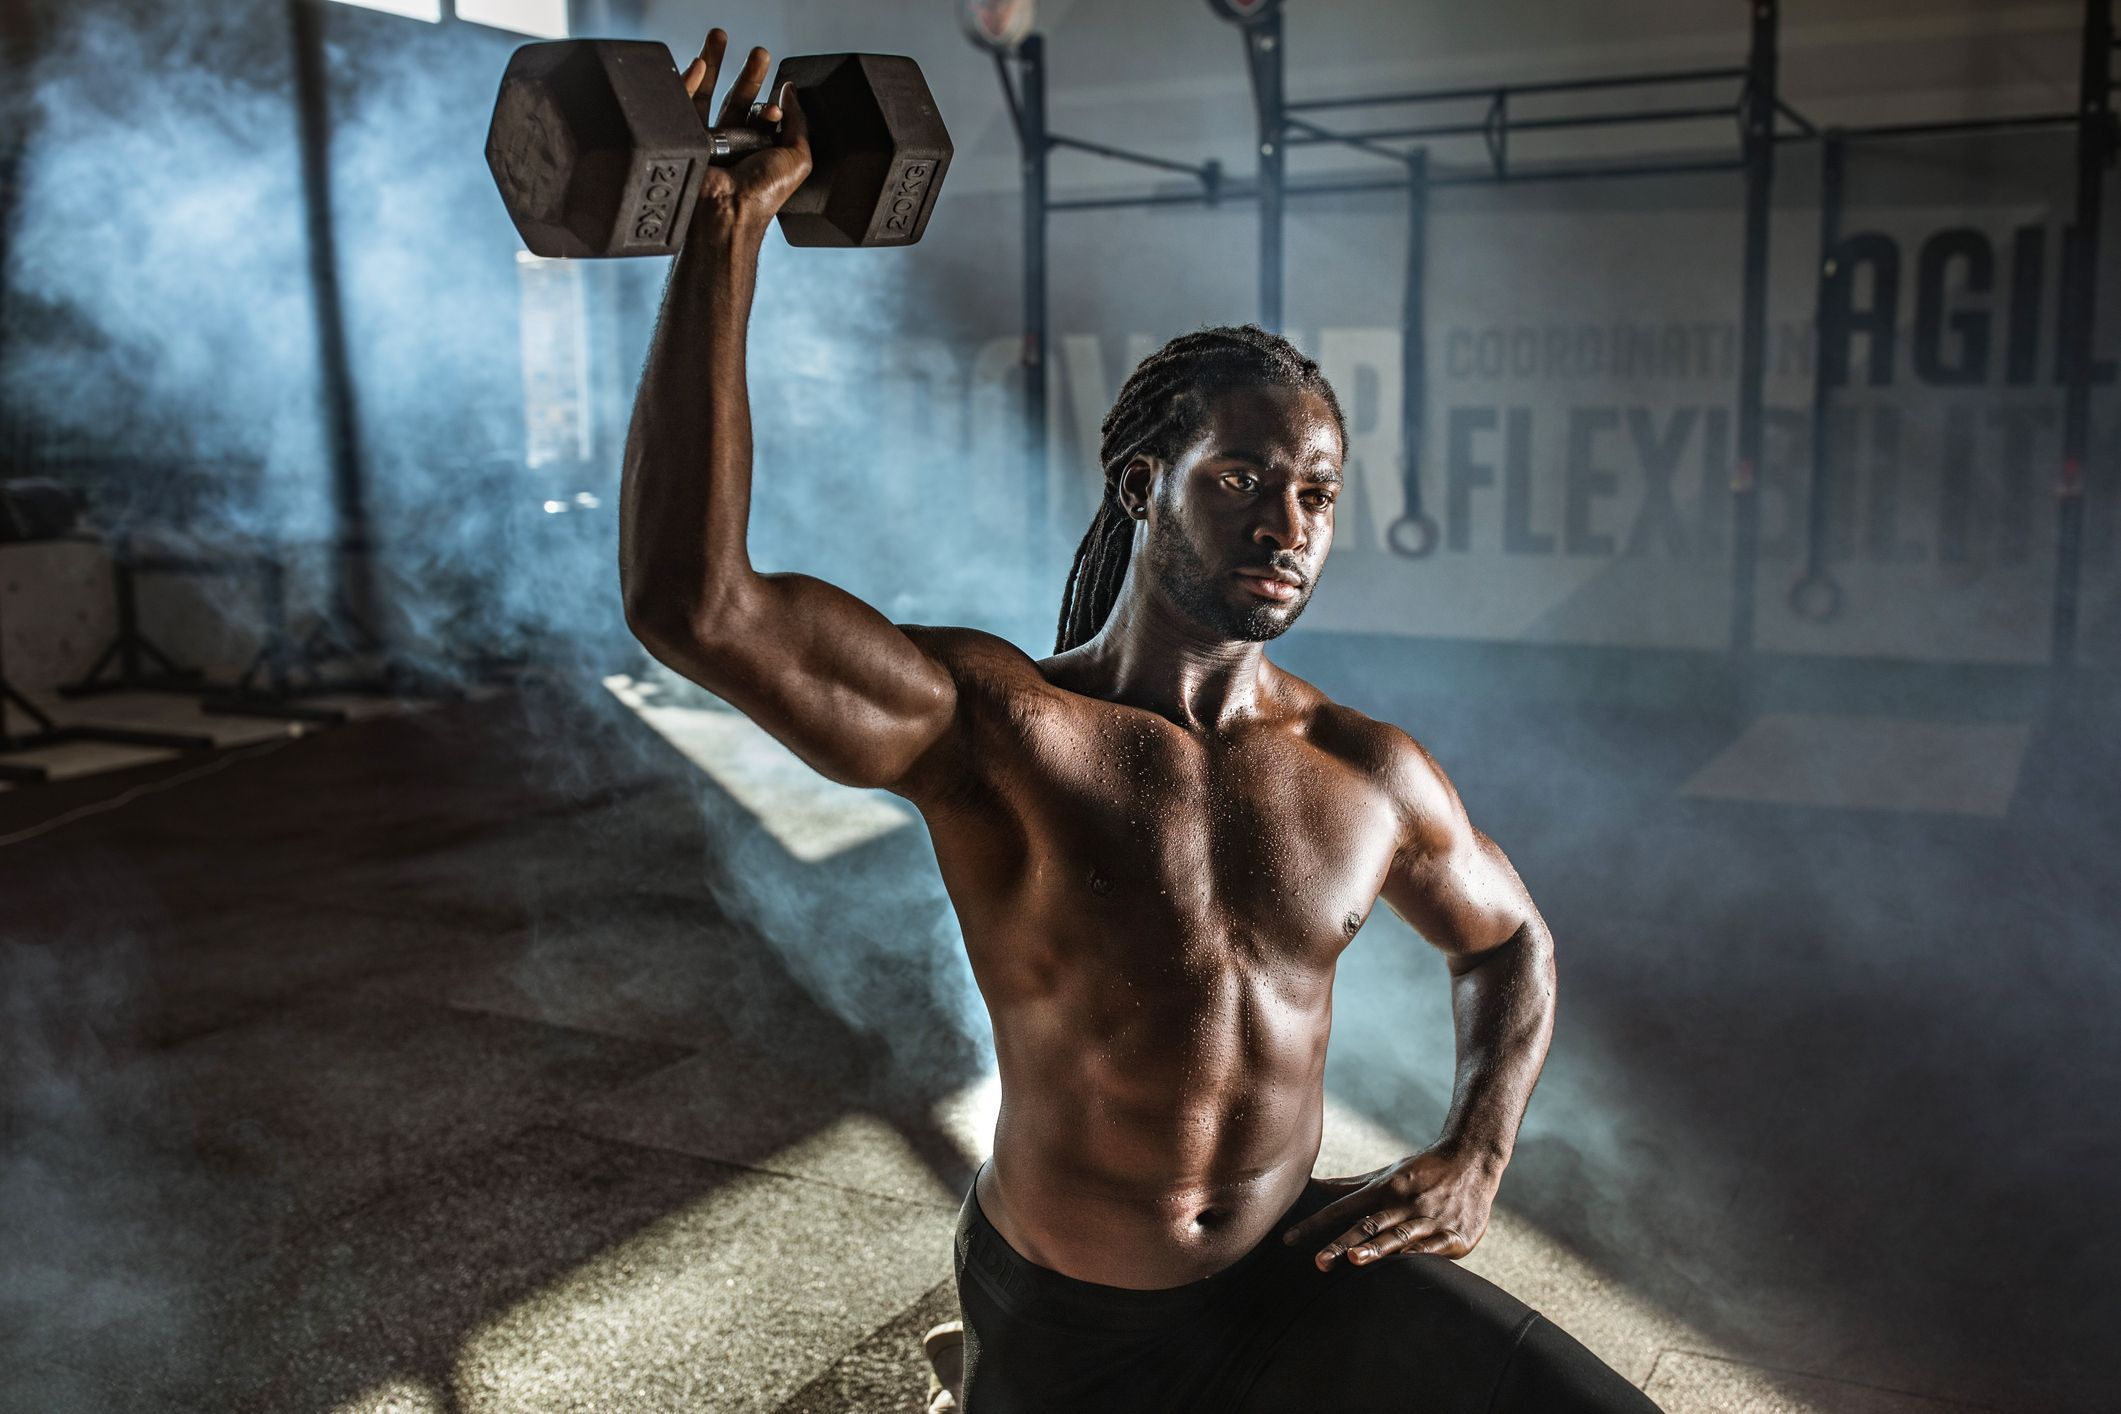 This 4-Week Workout Program Uses Just 1 Dumbbell